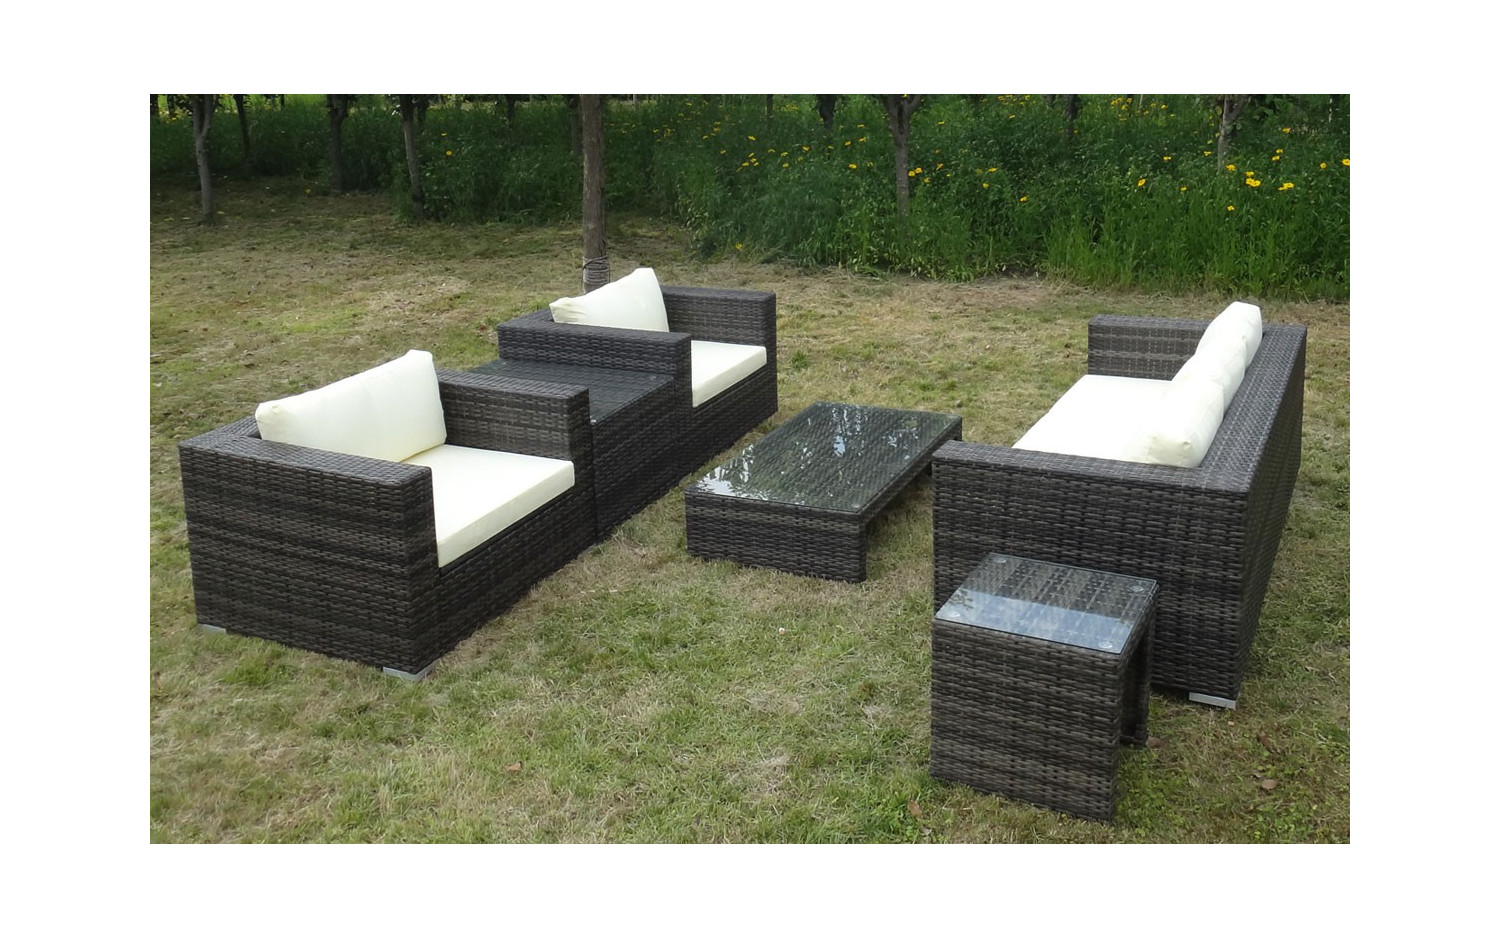 sitzlounge rattan braunbel with sitzlounge rattan enorm balkonmbel rattan moderne gartenm c. Black Bedroom Furniture Sets. Home Design Ideas